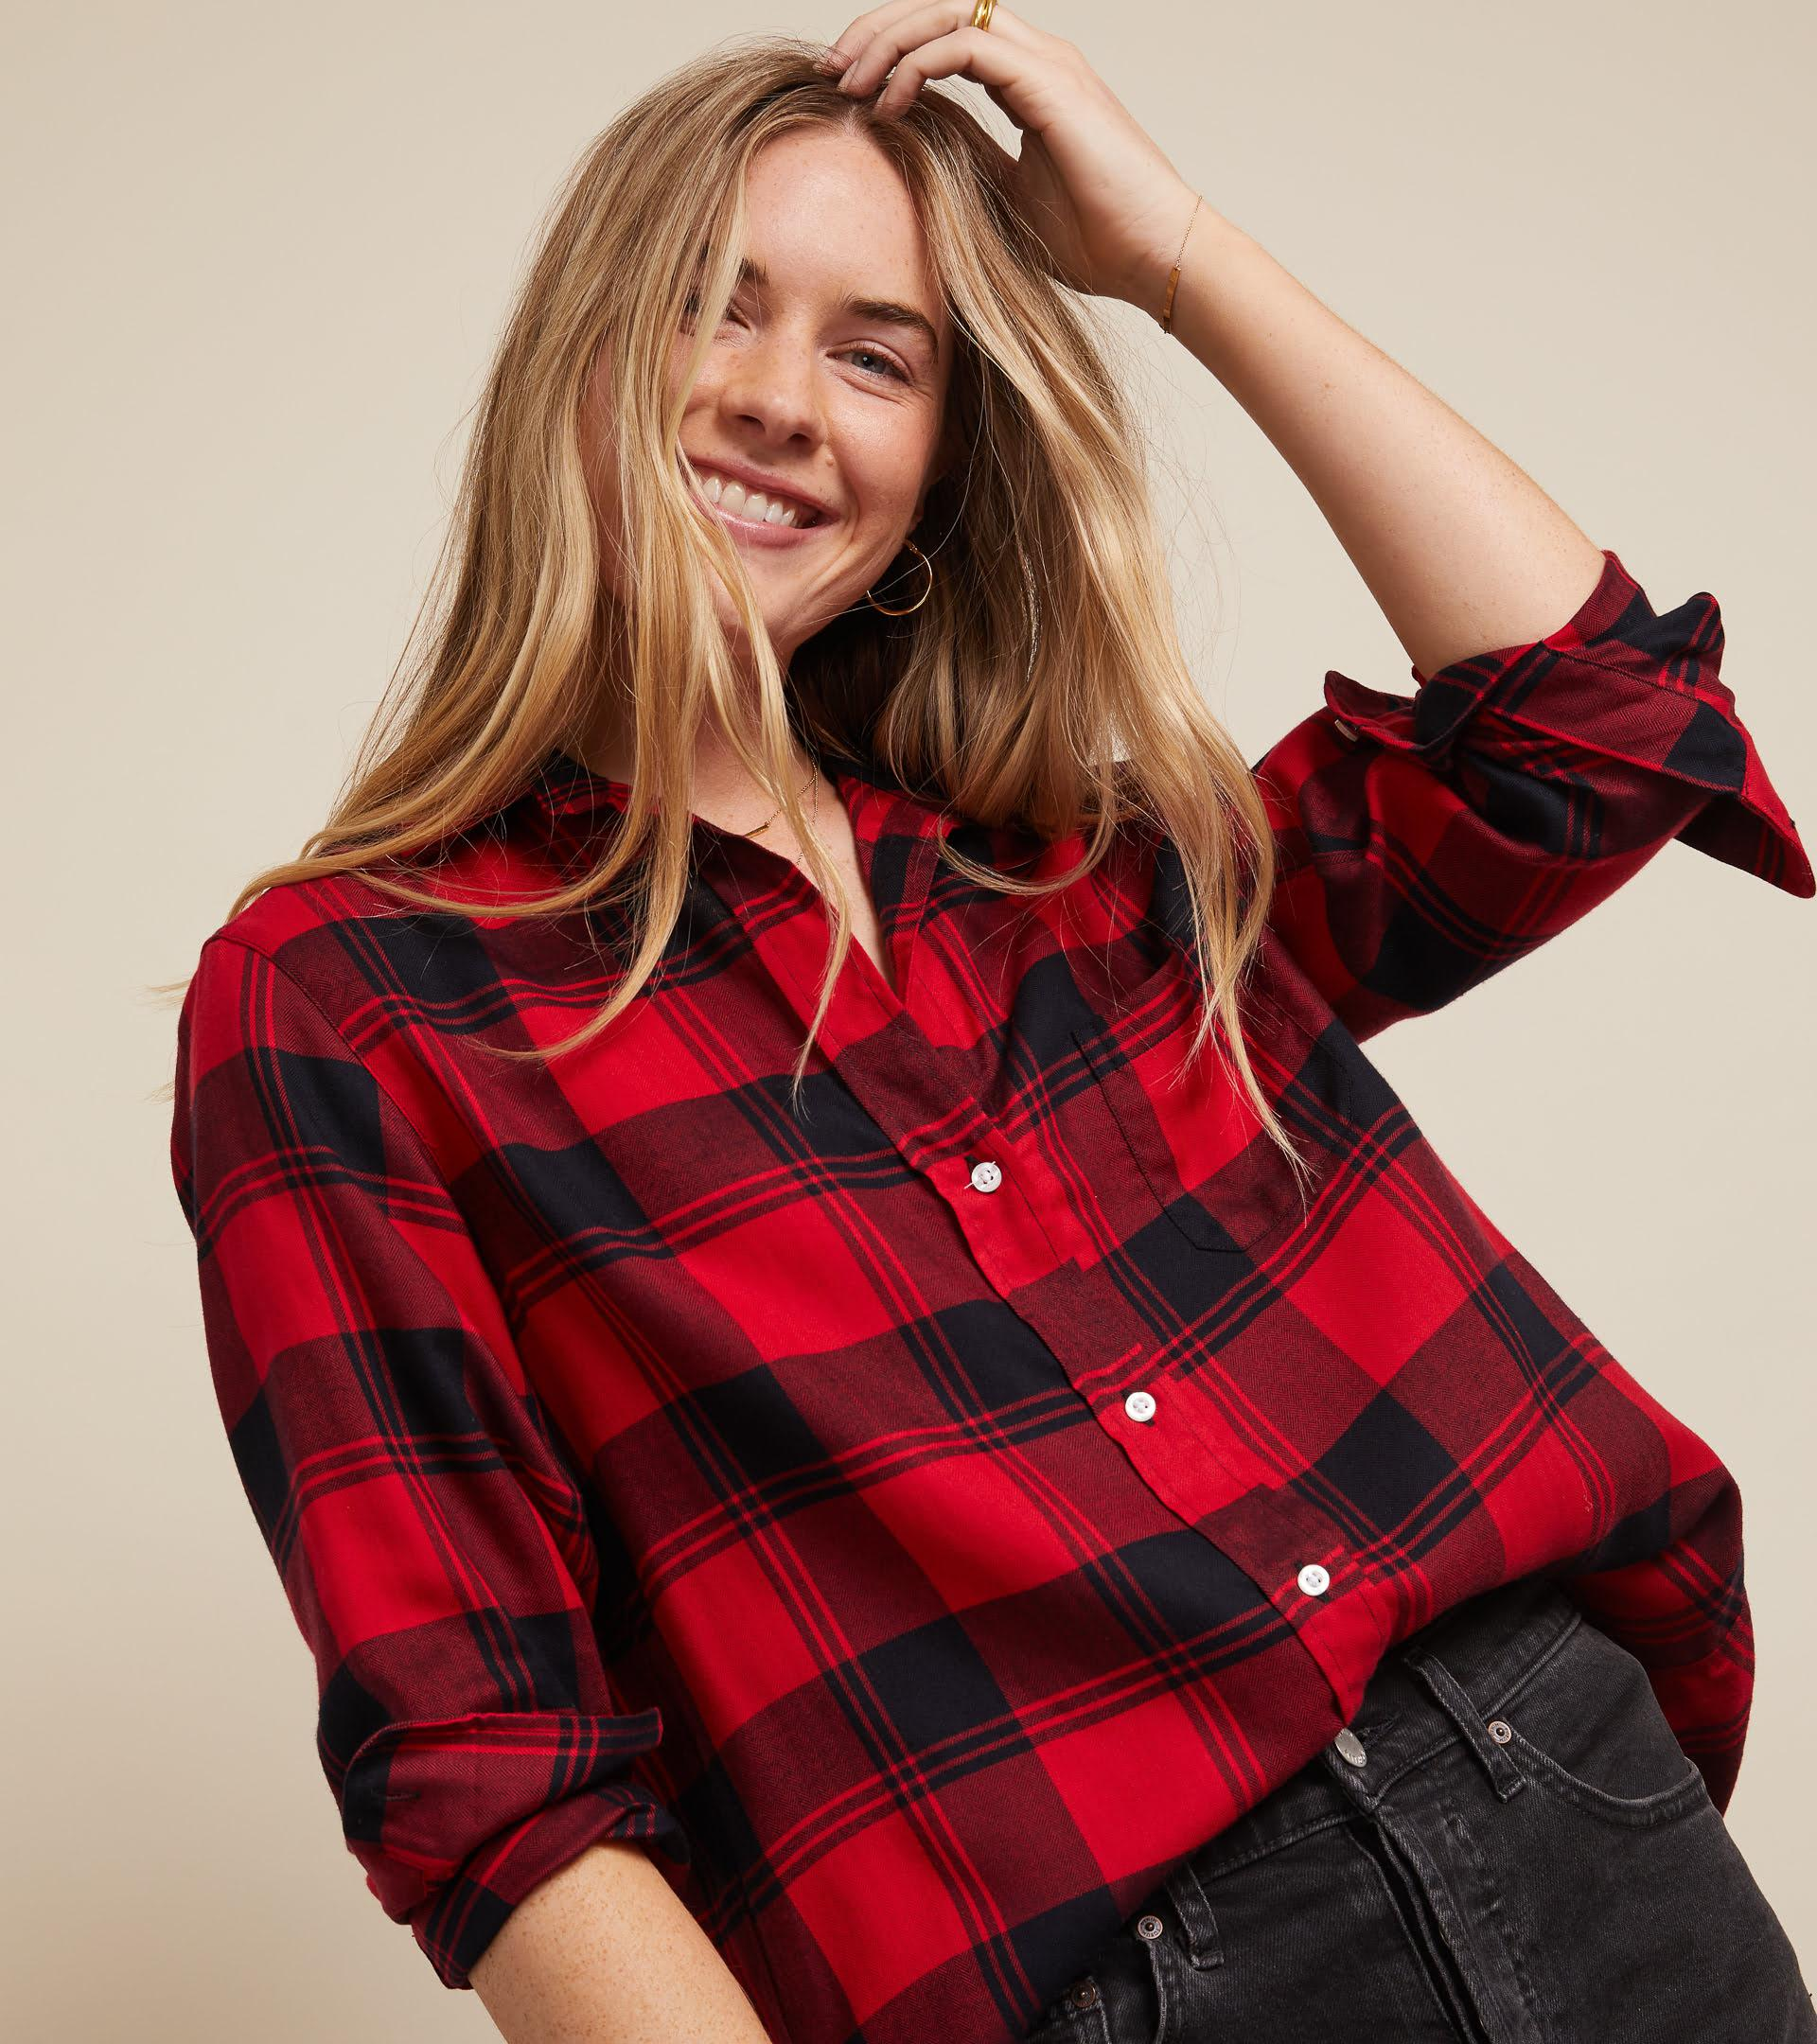 The Hero Button-Up Shirt Red and Black Plaid, Liquid Flannel